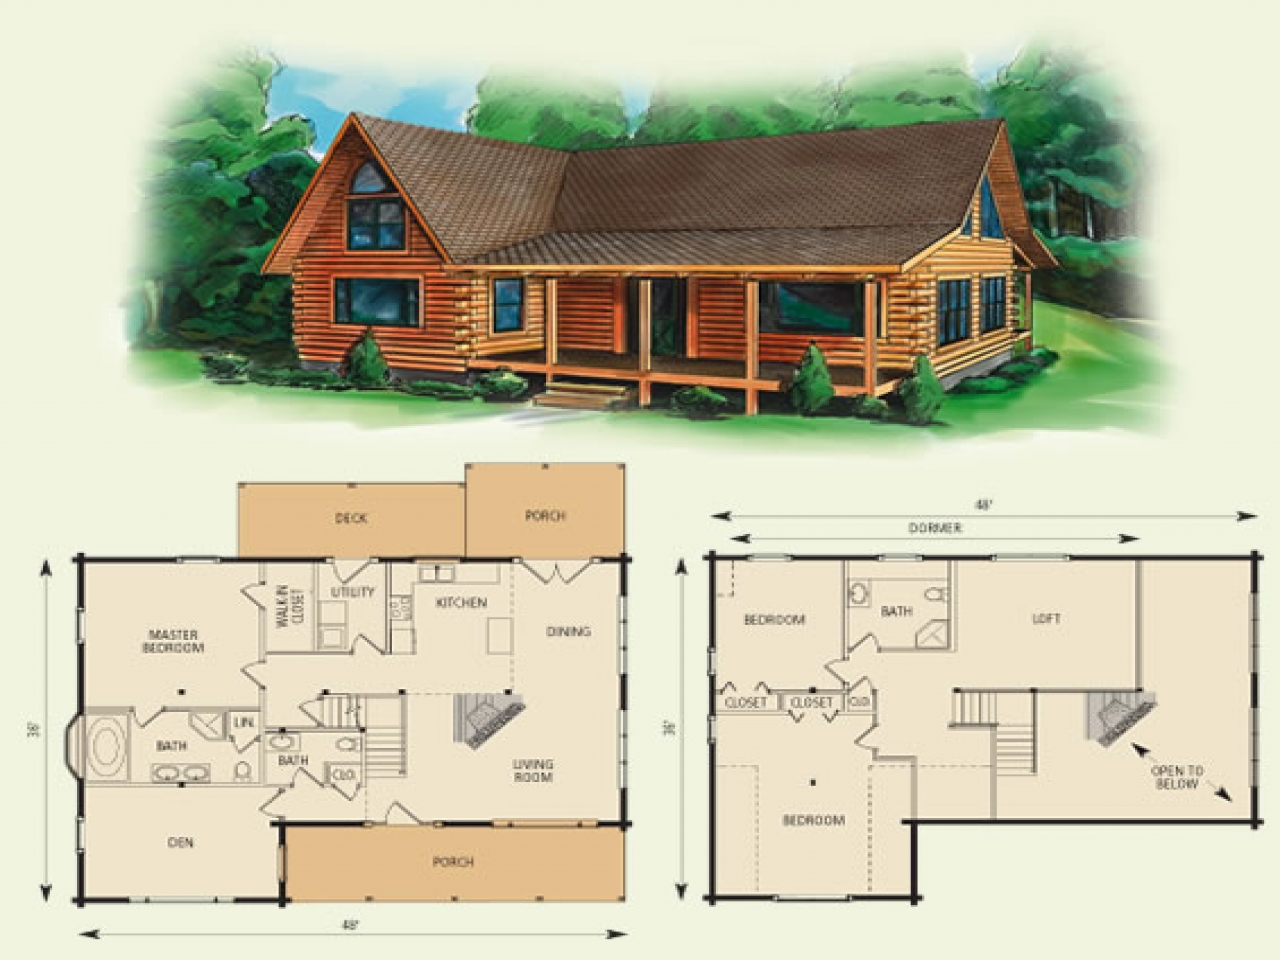 Log cabin loft floor plans small log cabins with lofts cabin floor plan with loft for Log home floor plans and designs